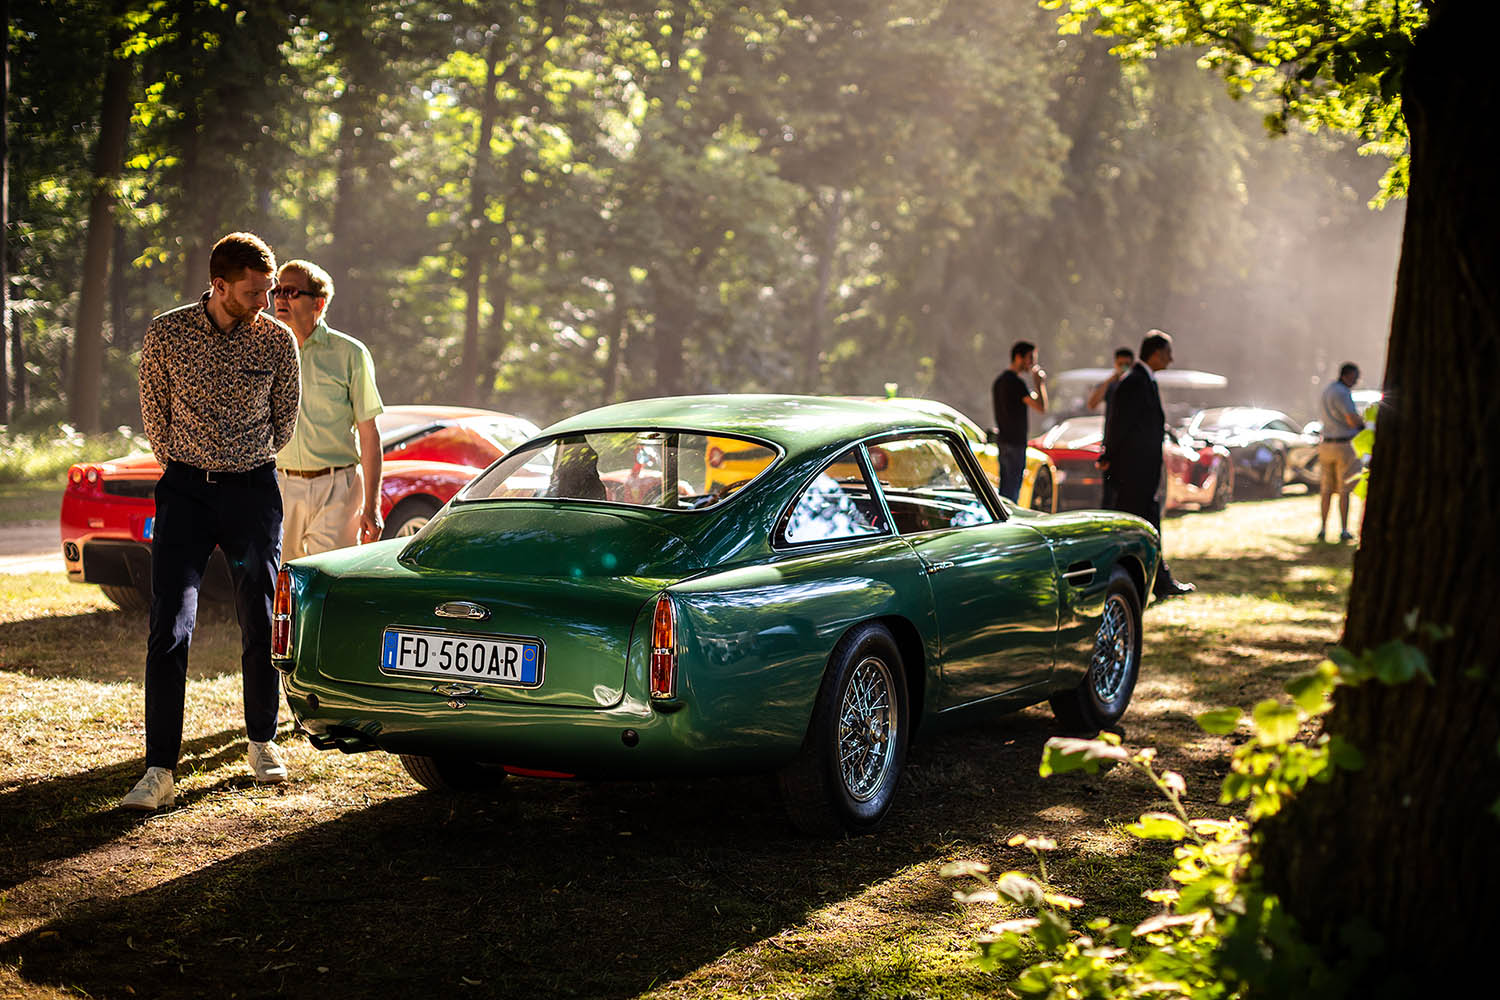 2019_PeterAuto_Chantilly_AlexisGoure_0455.jpg